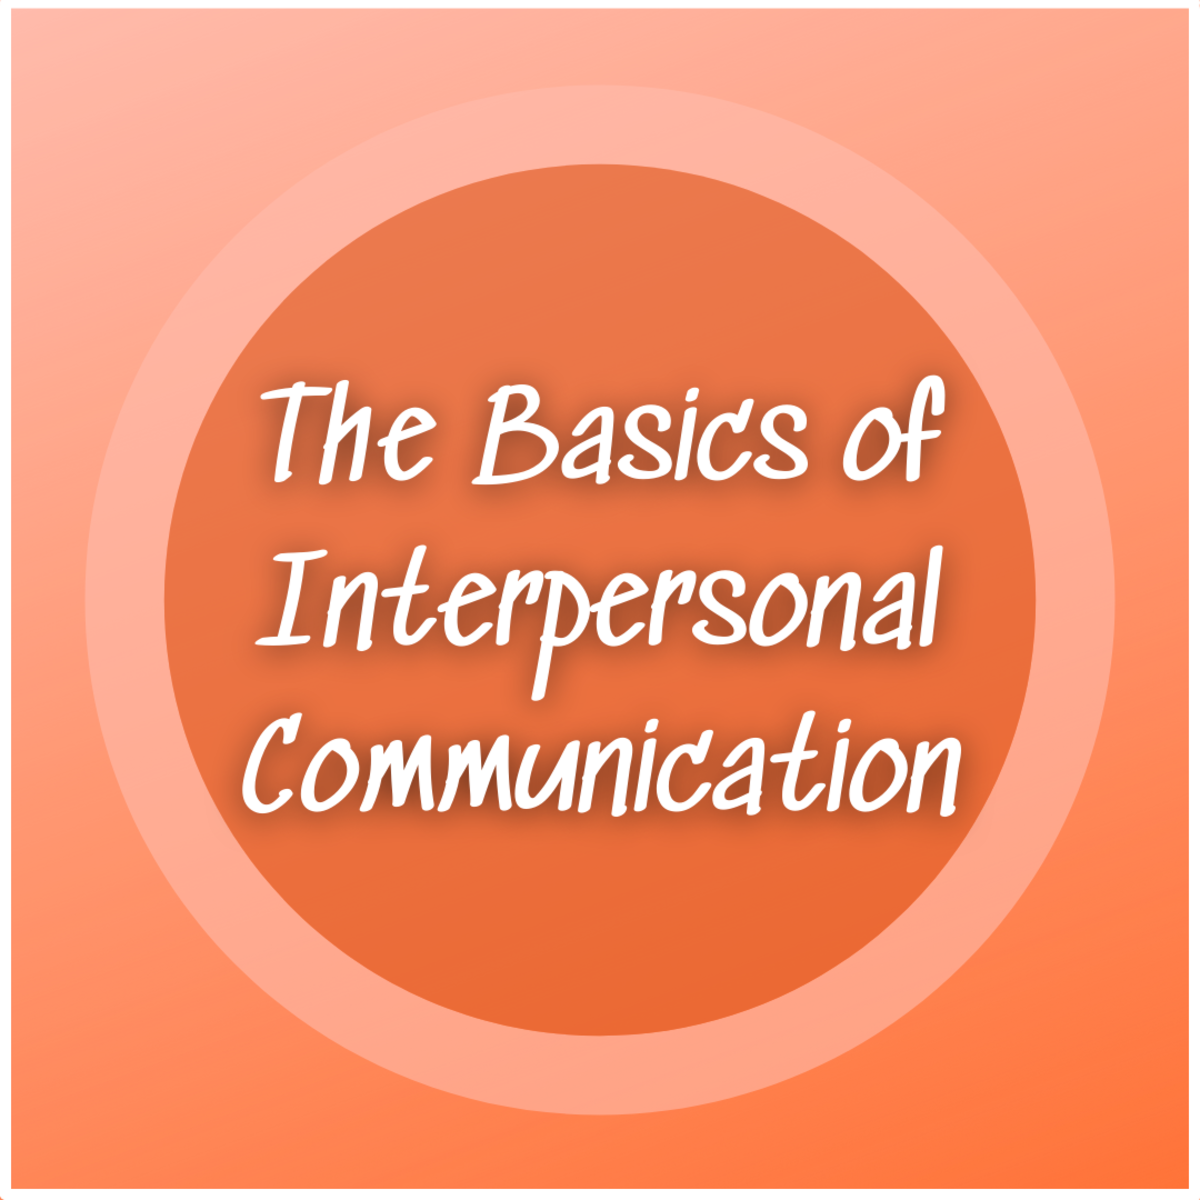 Everything You Need to Know About Interpersonal Communication